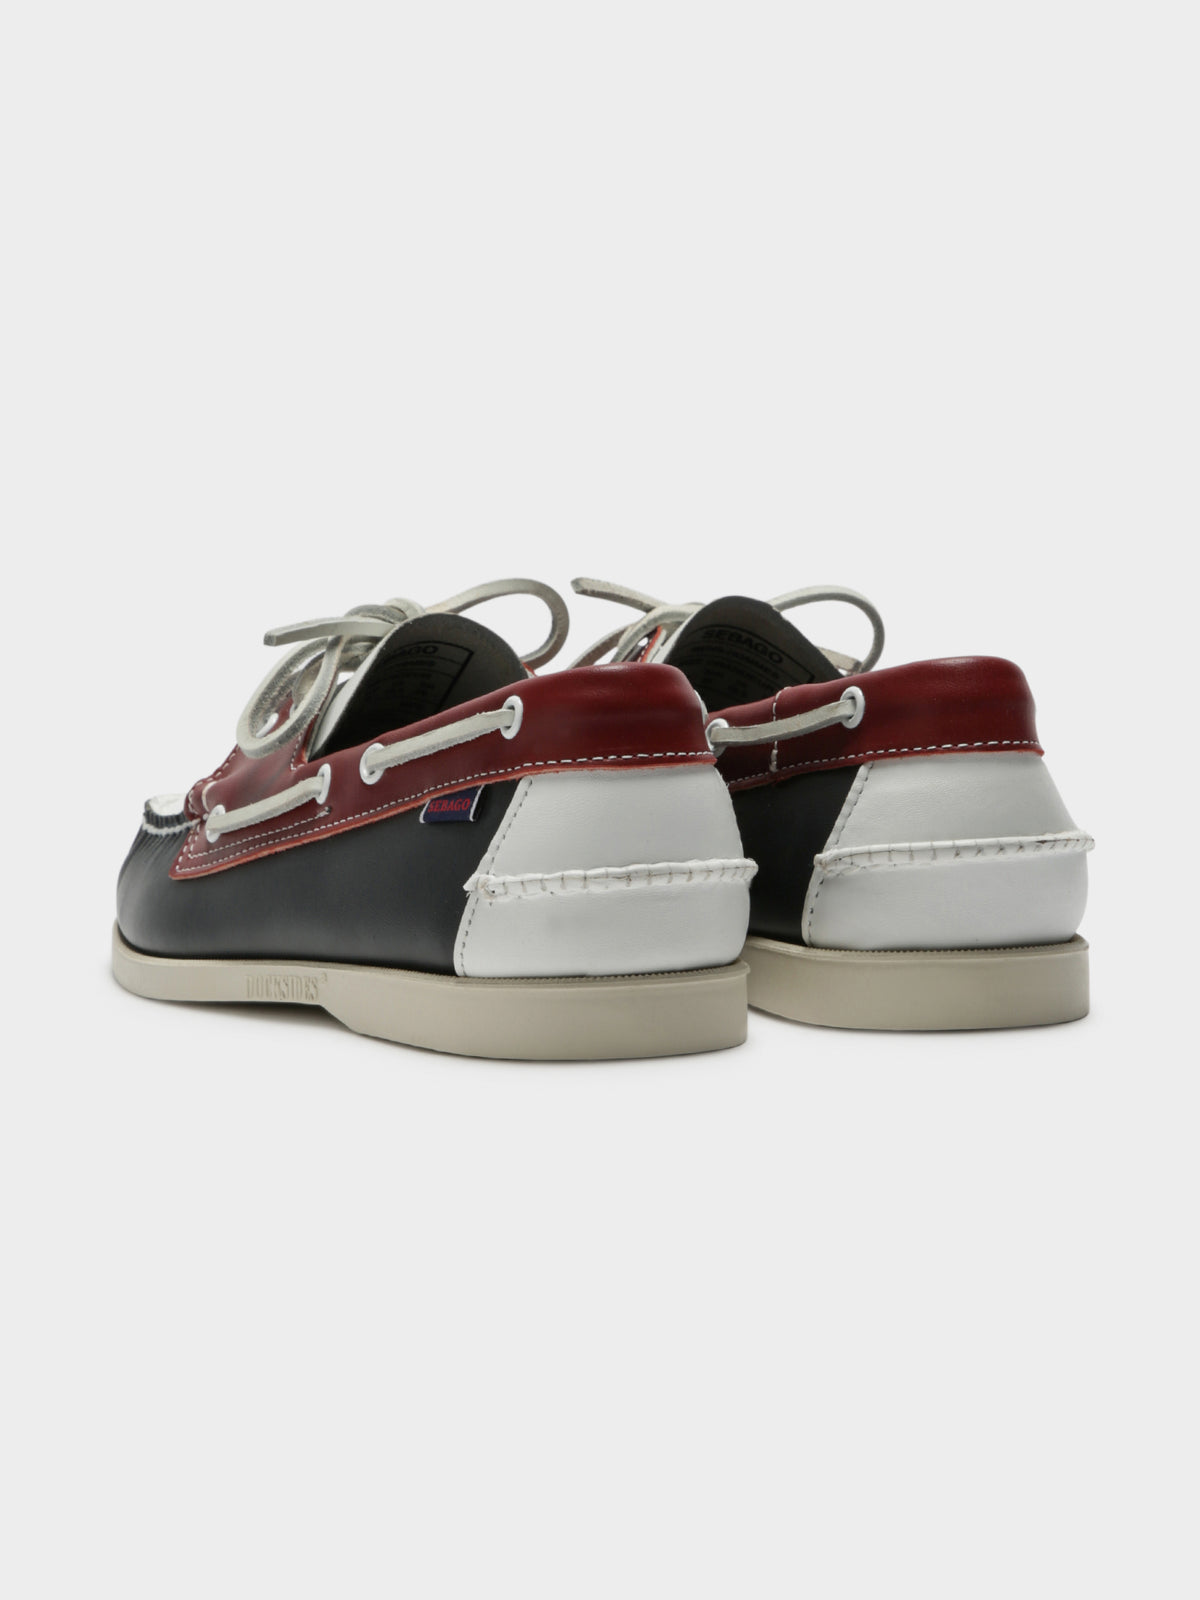 Mens Docksides Portland Spinnaker Boat Shoes in Navy Red & White